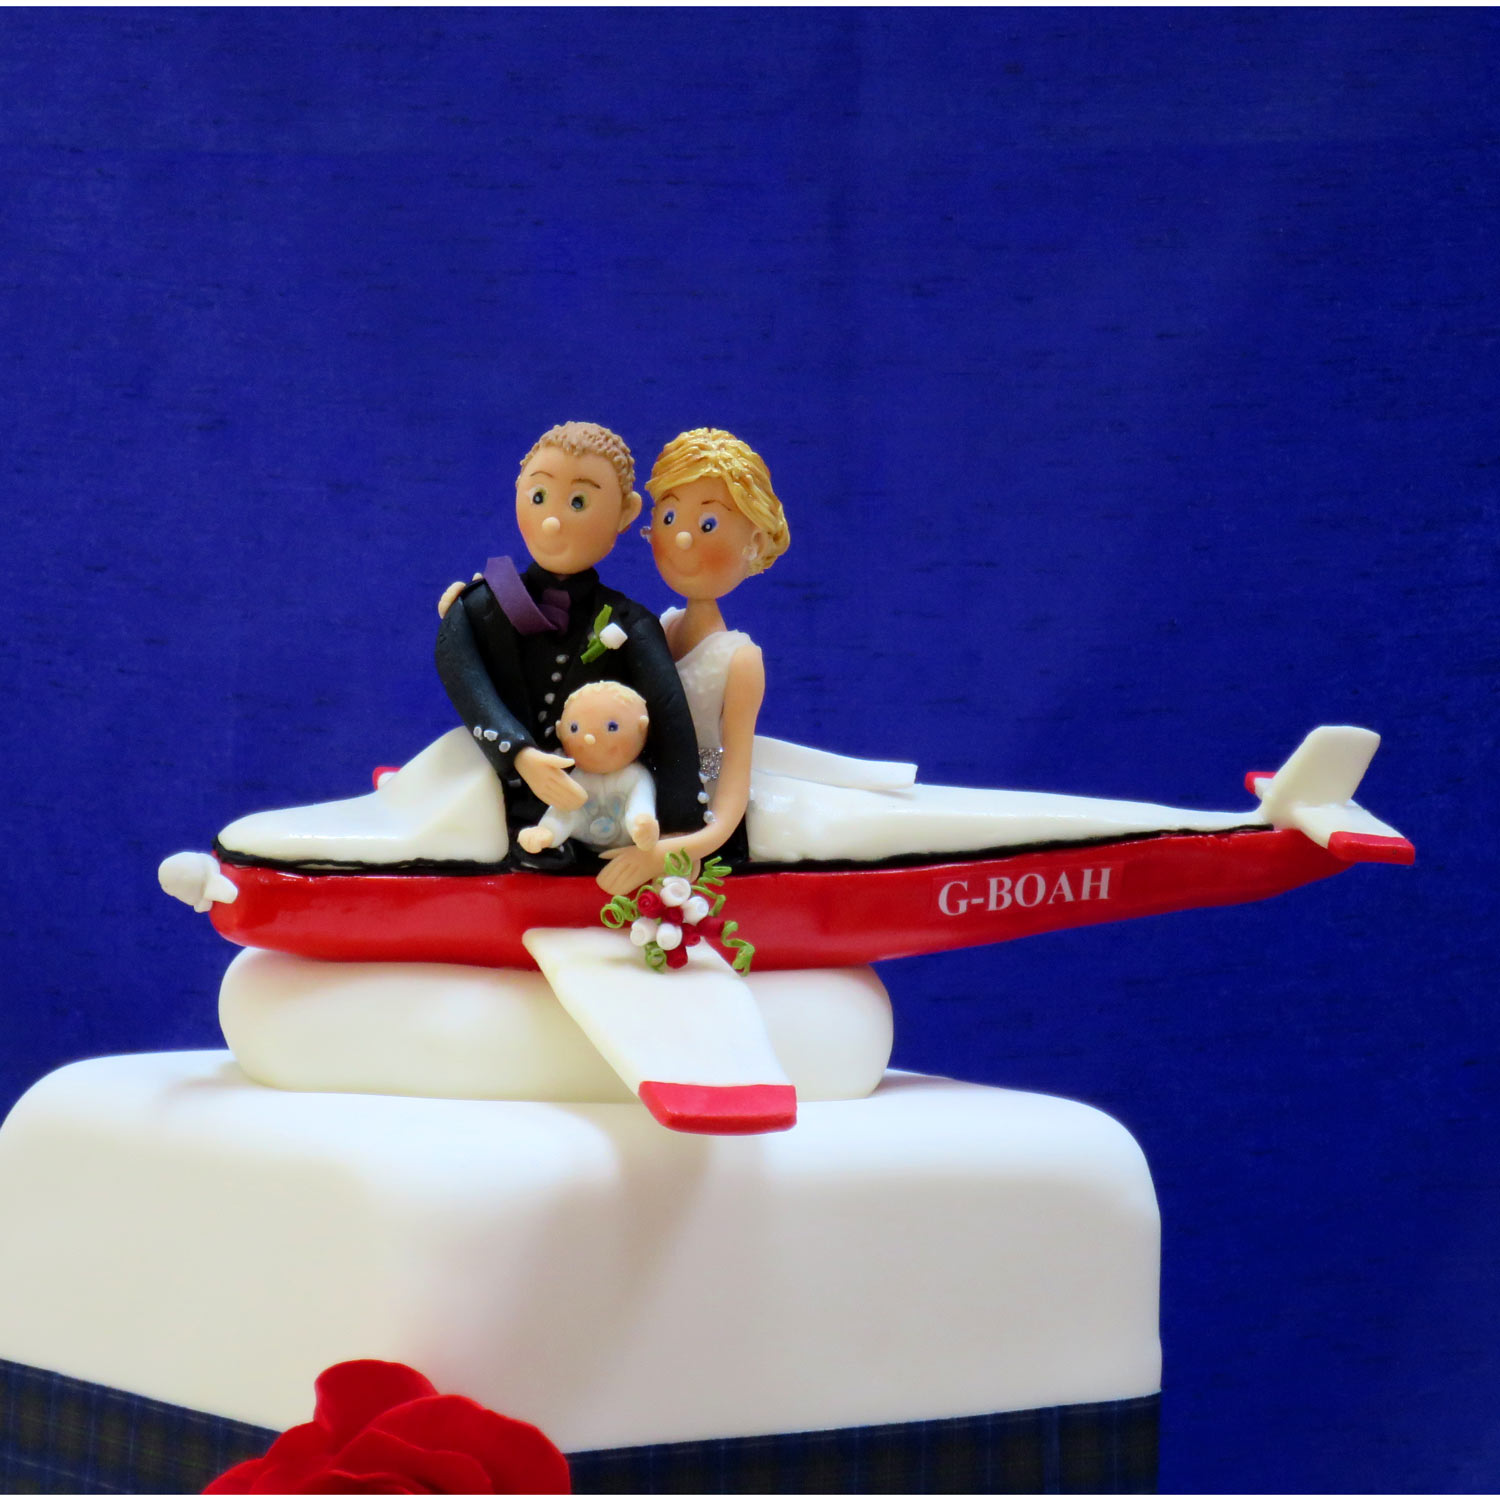 Flying Bride, Groom and Baby Cake Topper.